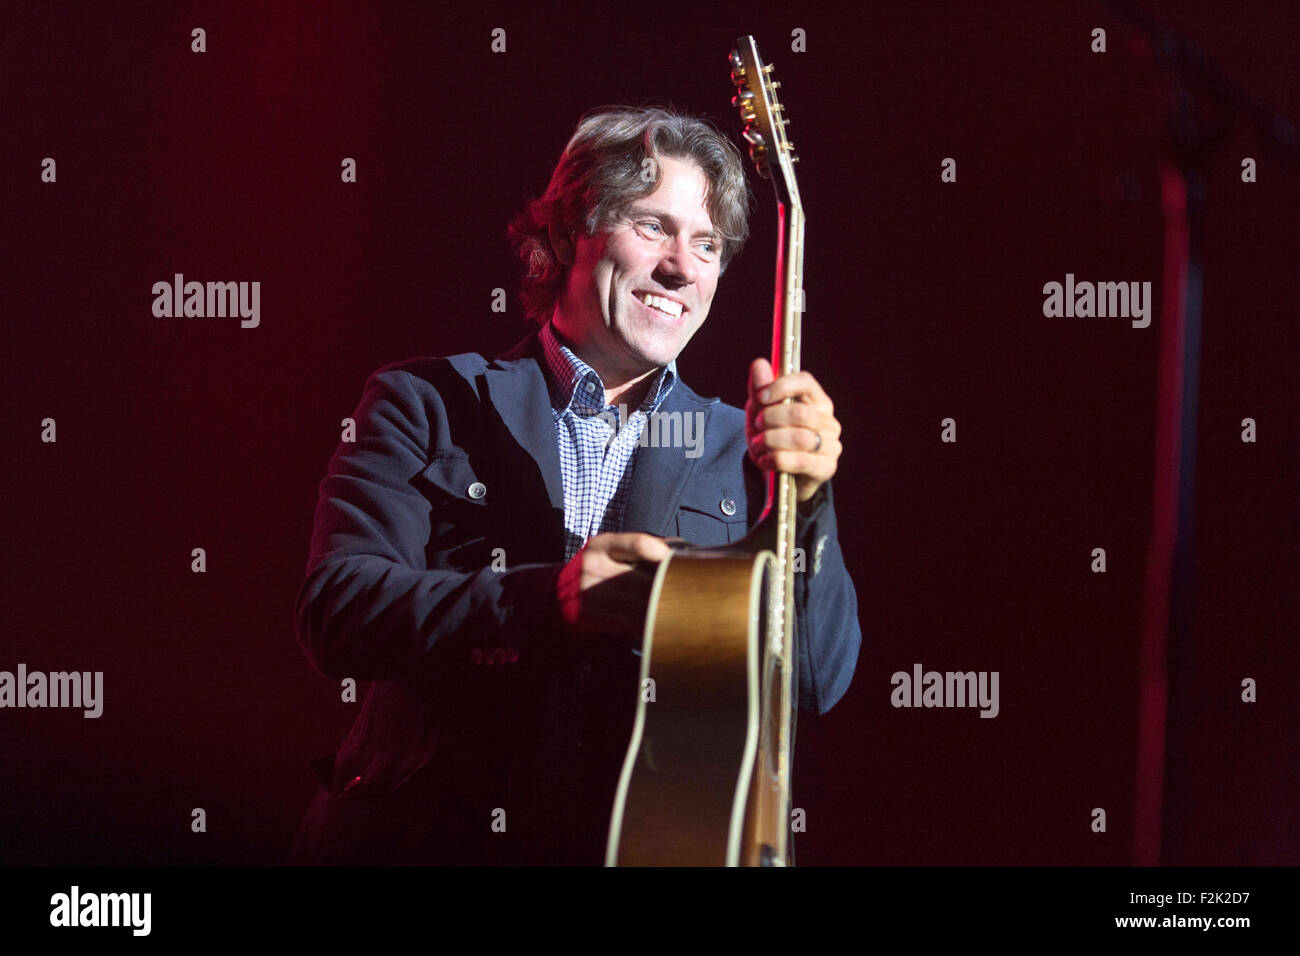 19/9/15 With Love From Liverpool Concert Comedian John Bishop - Stock Image